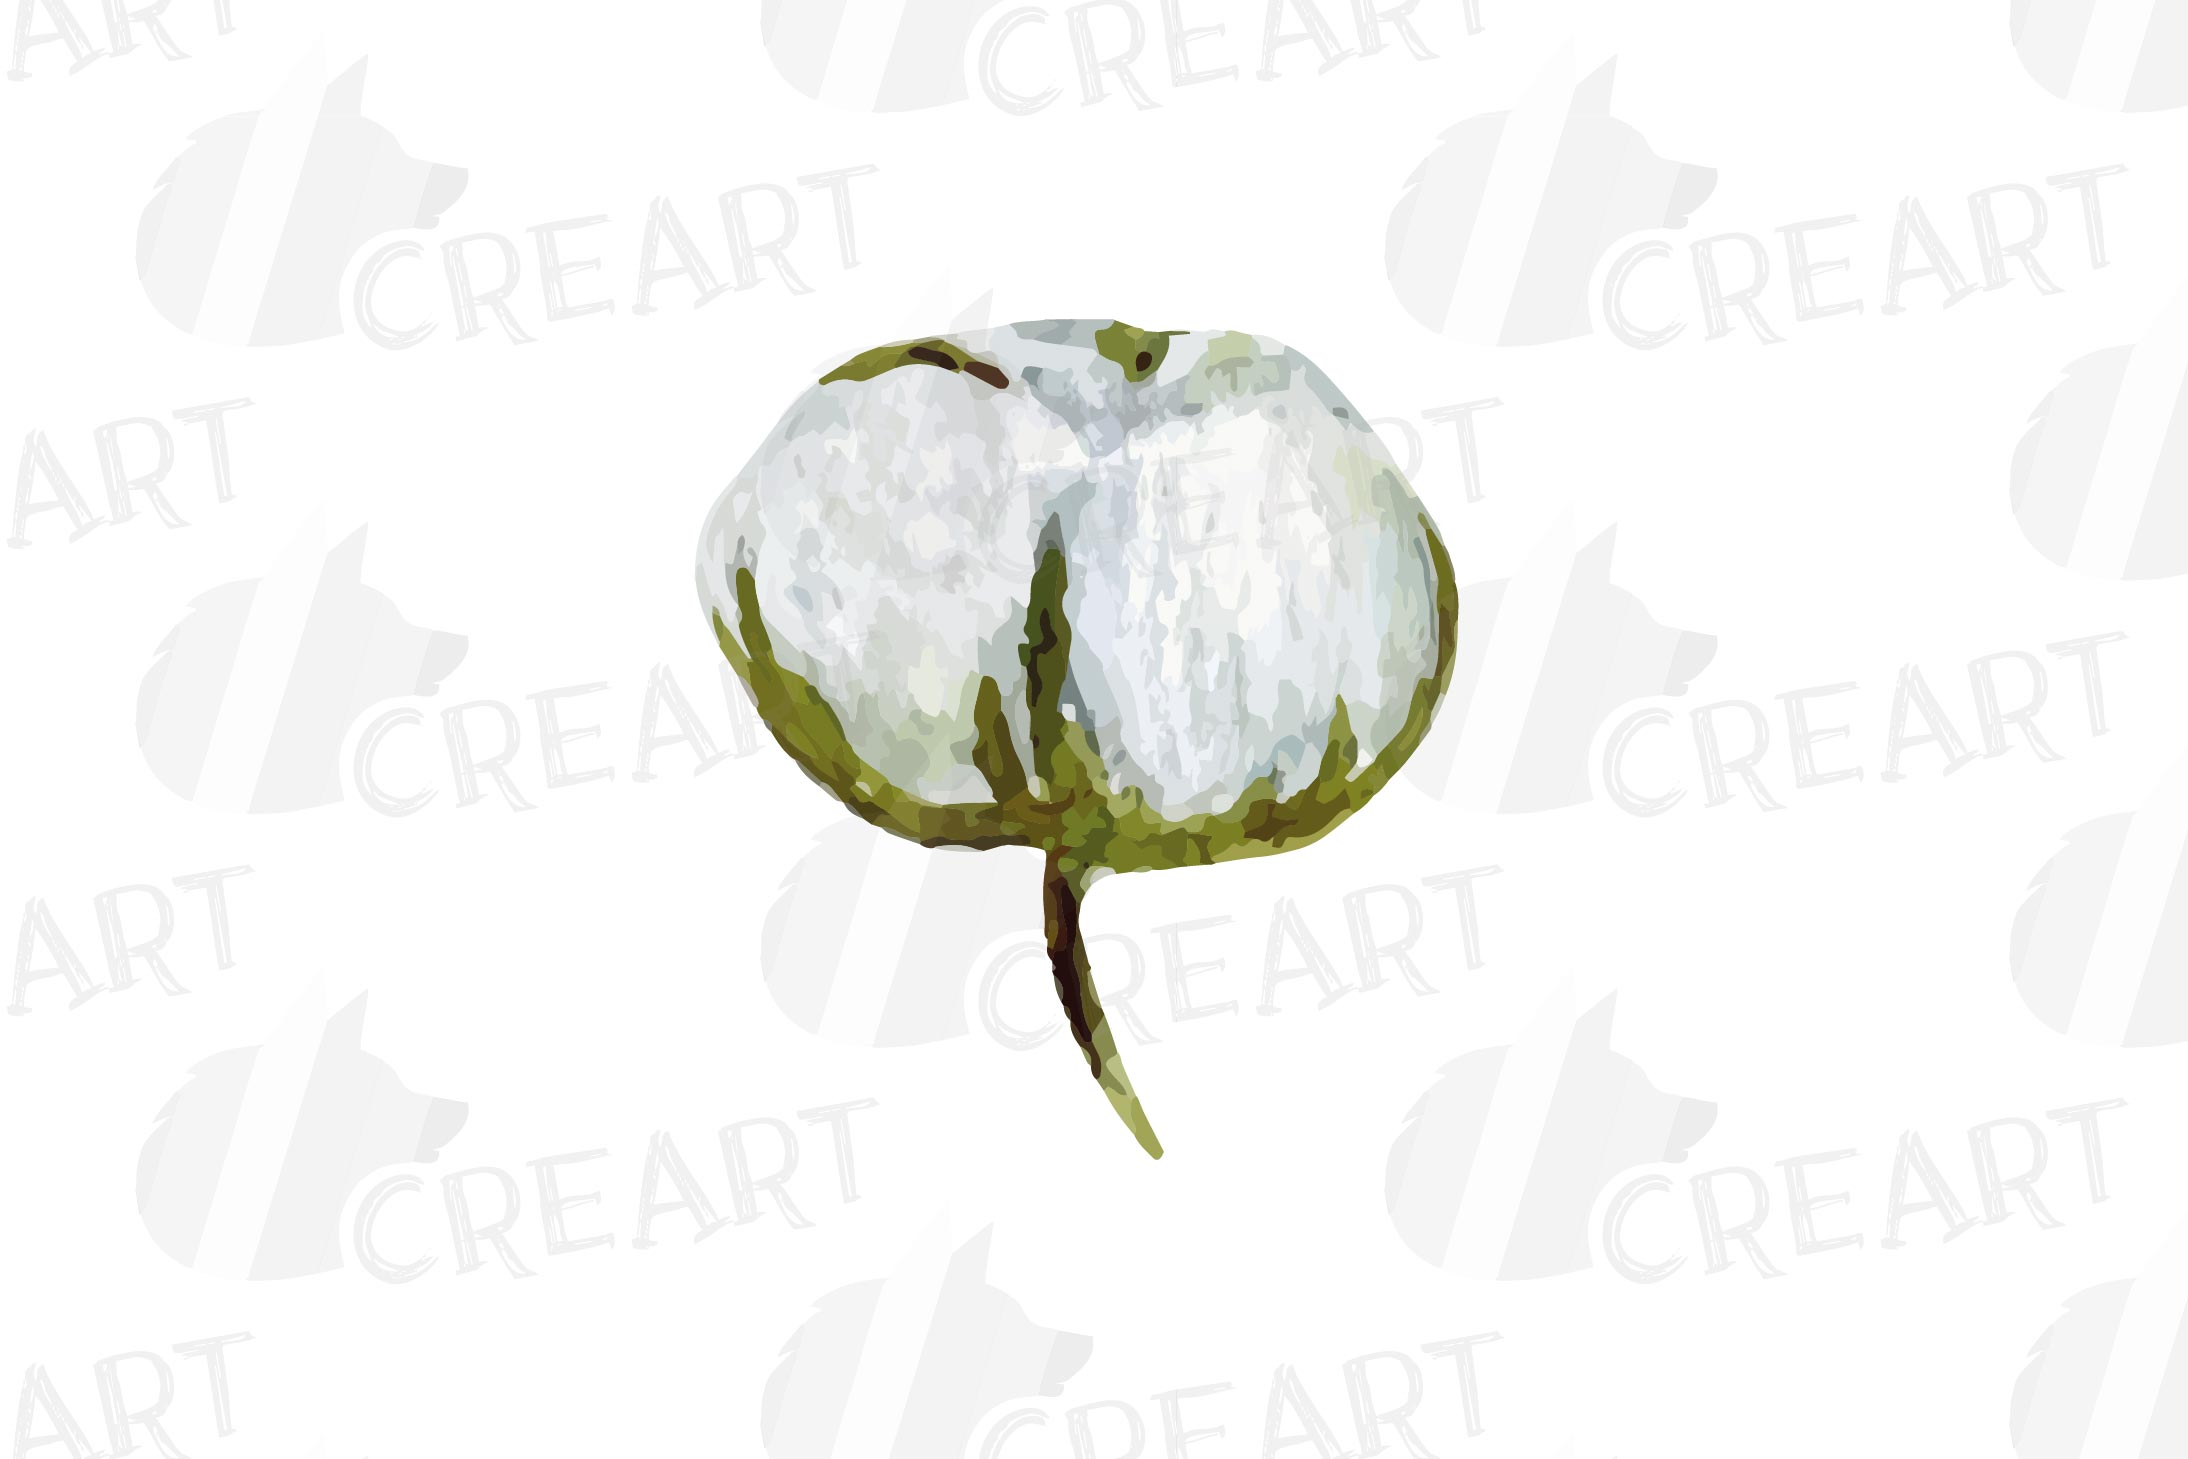 Cotton bolls and fir branch leafy autumn and winter decor example image 15